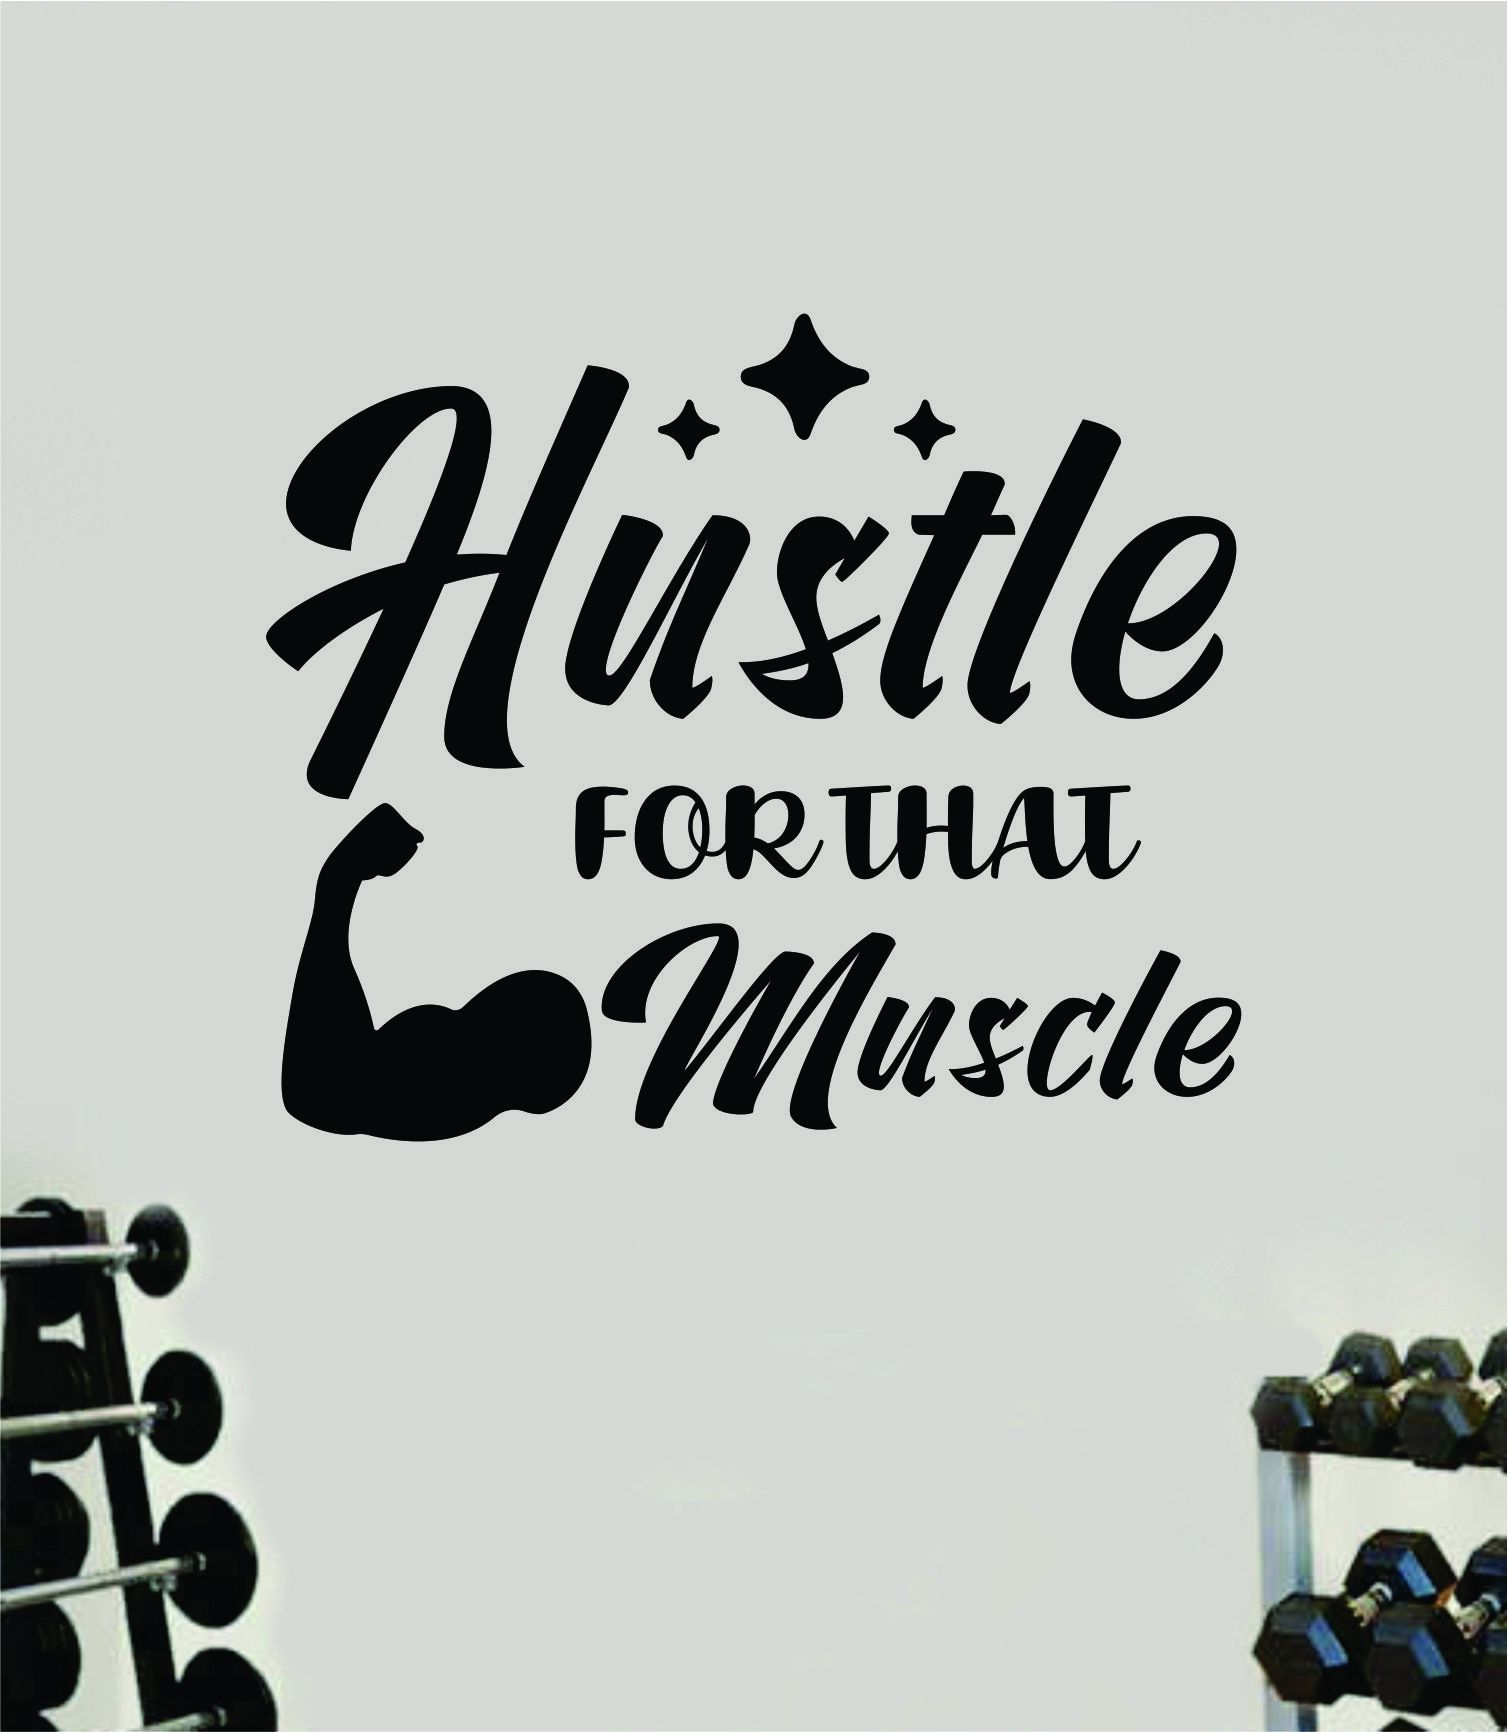 Hustle For That Muscle V2 Wall Decal Sticker Vinyl Art Wall Bedroom Room Decor Motivational Inspirational Teen Sports Gym Fitness Lift Health - brown